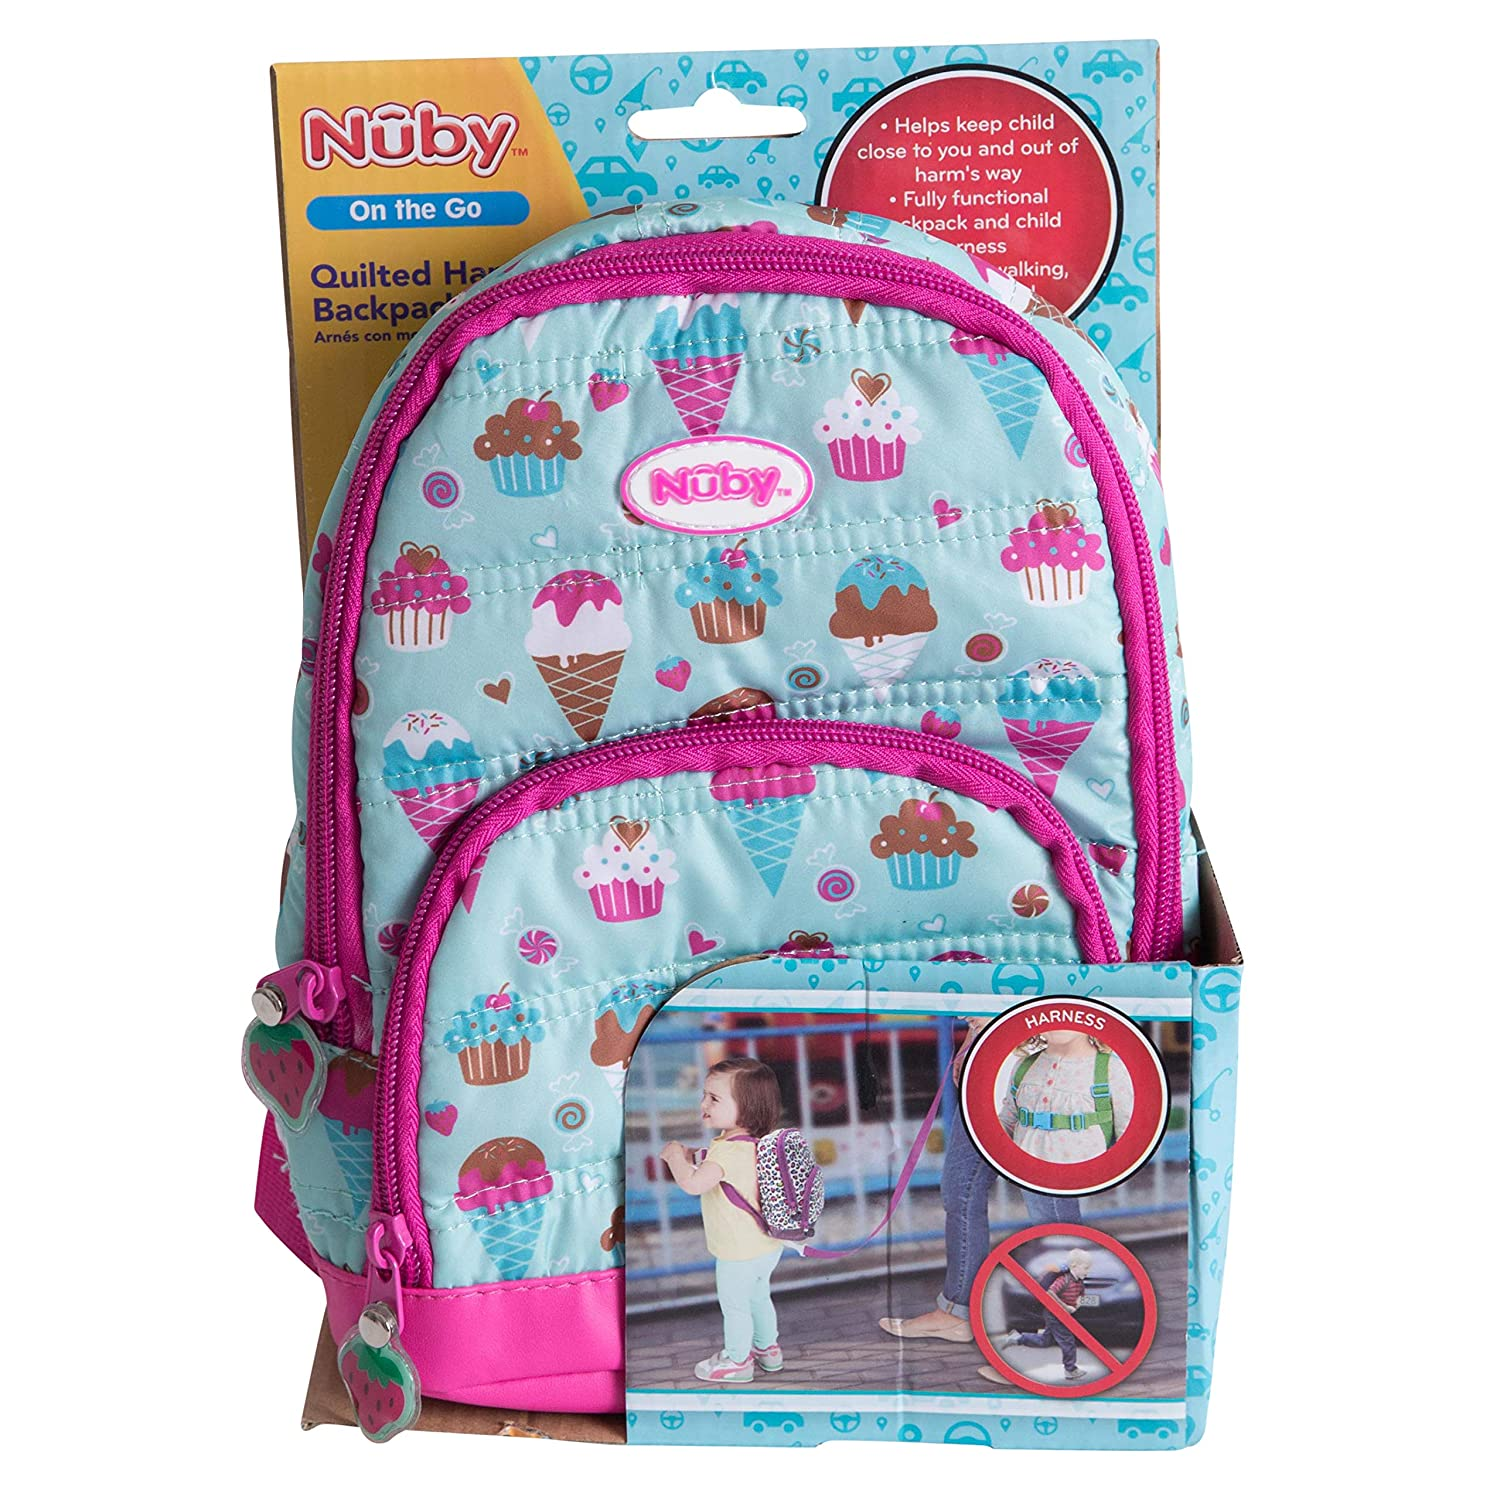 Nuby Quilted Sweet Girl Backpack with Safety Harness Leash, Child Baby Toddler Travel